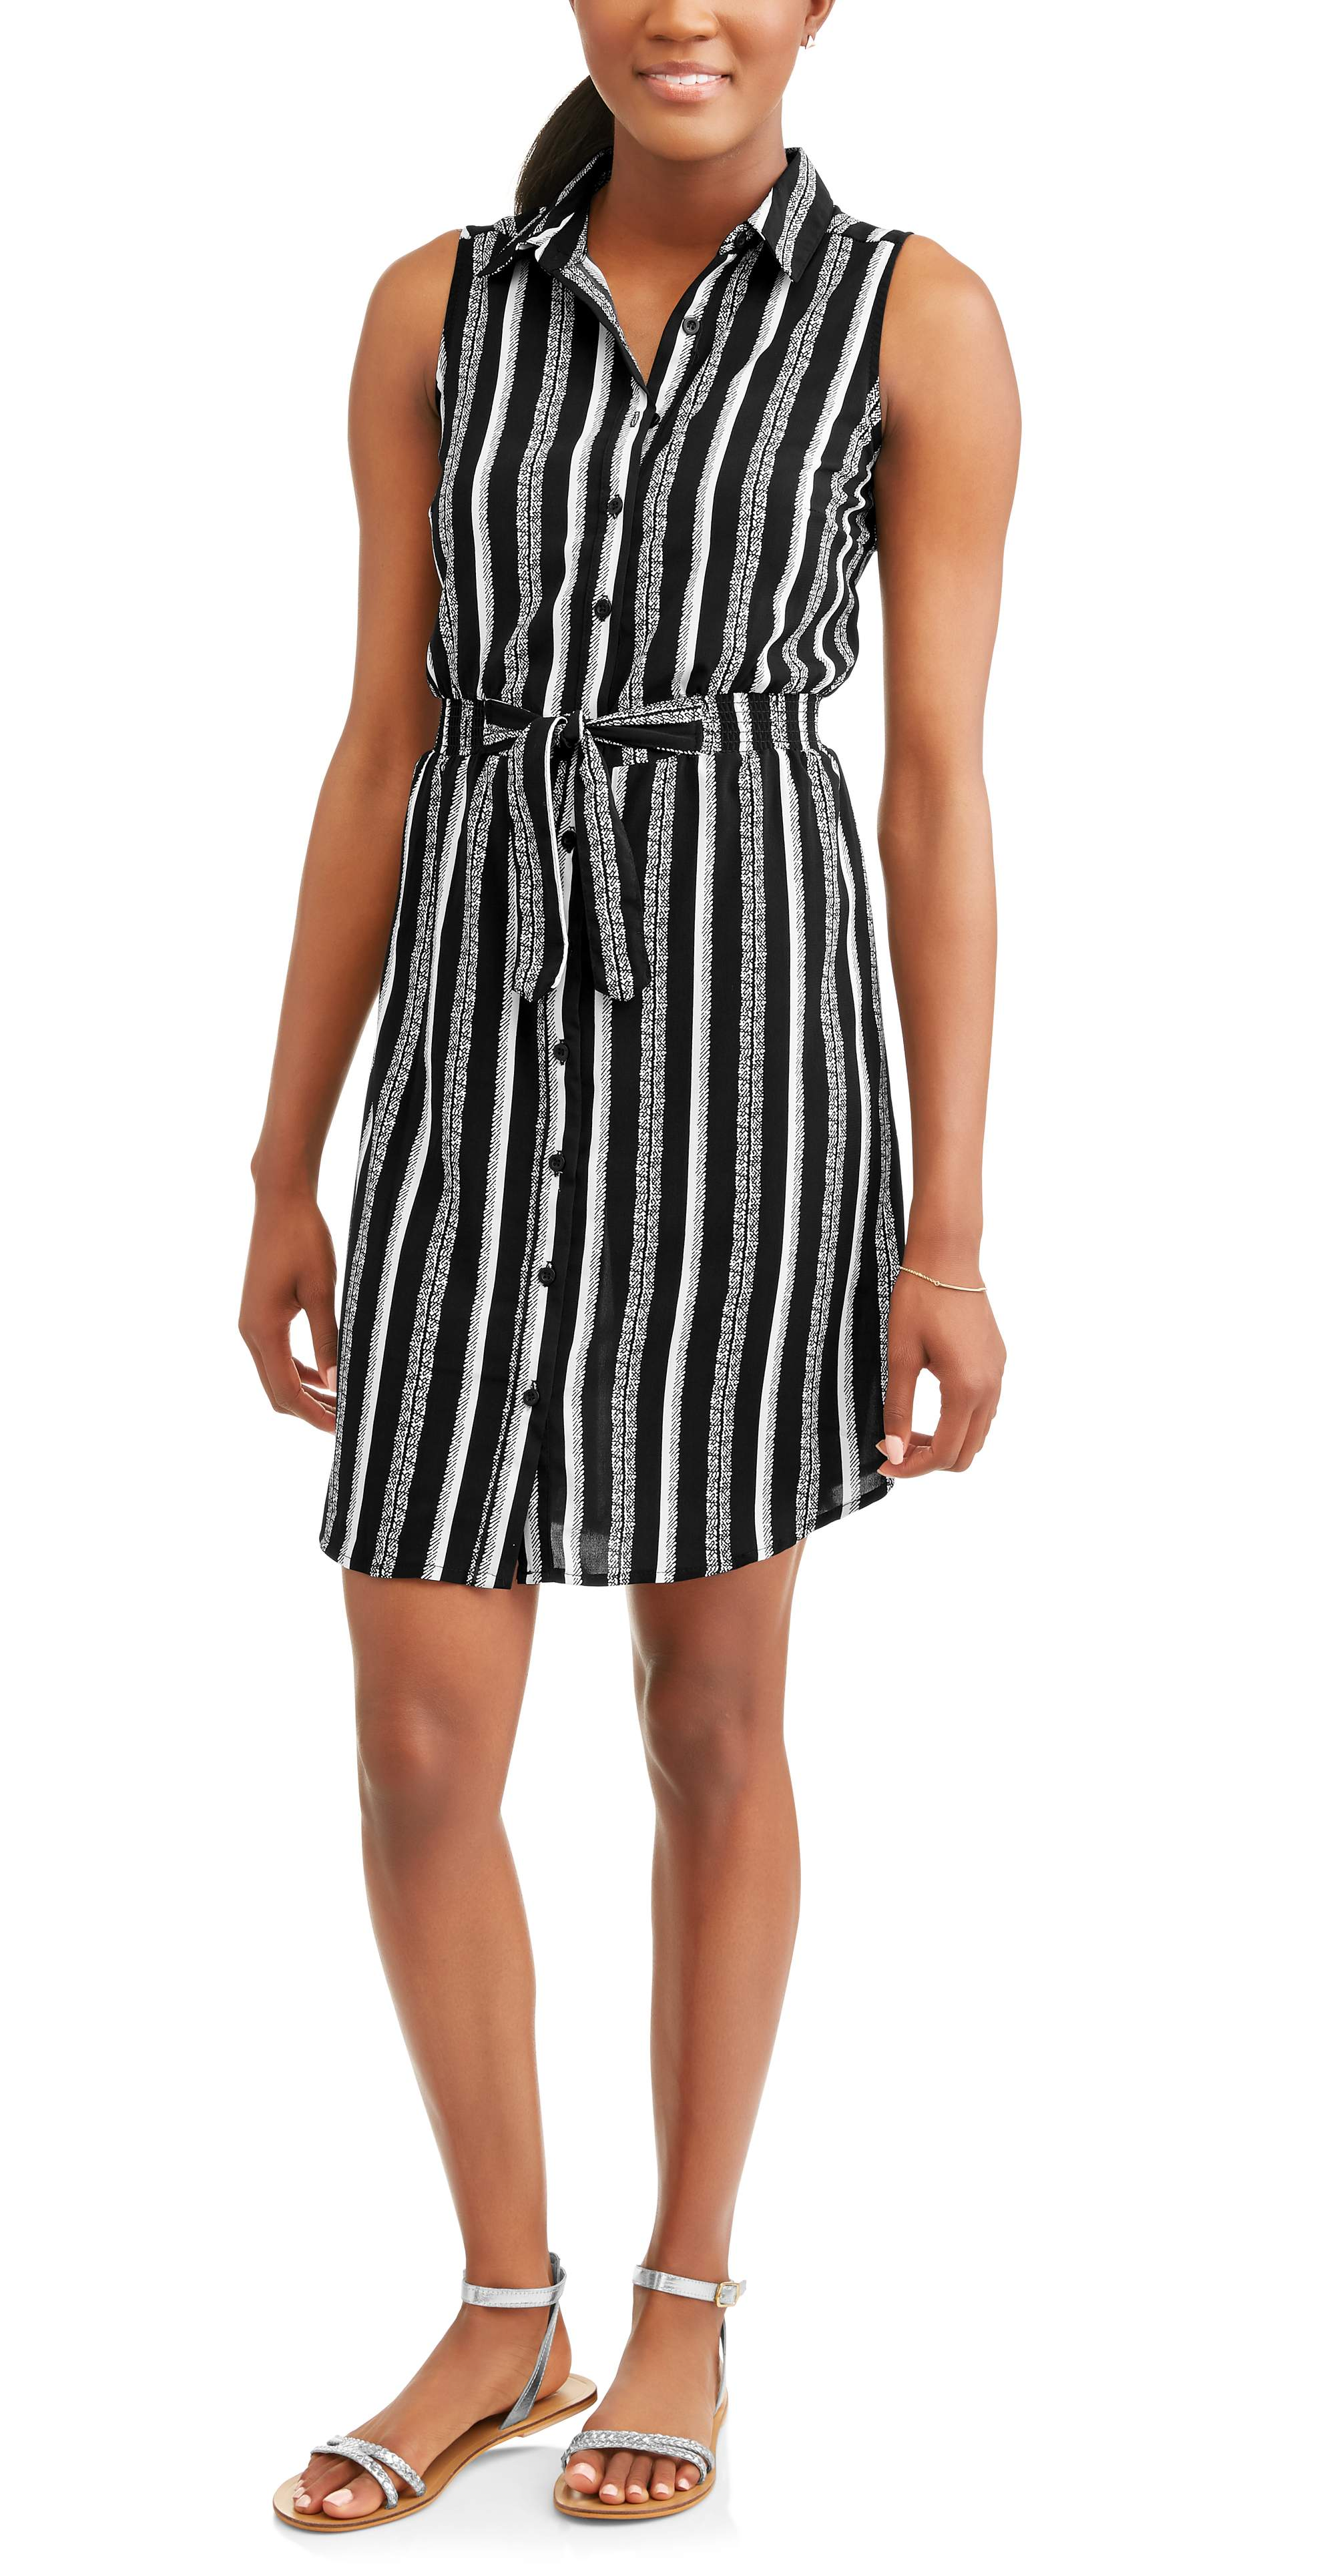 Striped Sleeveless Dress